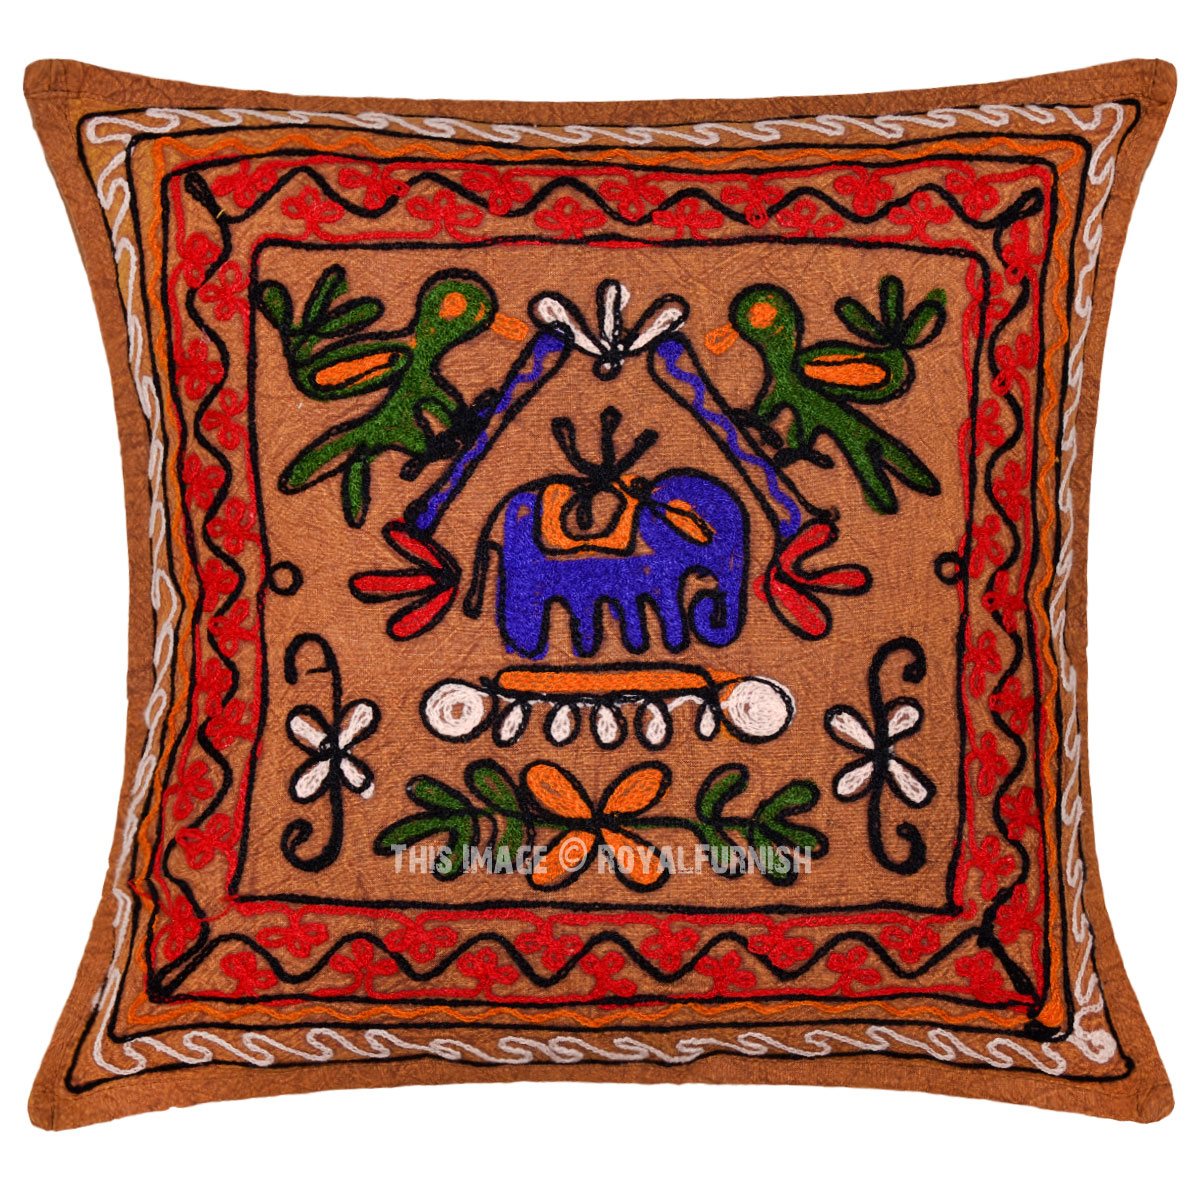 Vintage Decorative Throw Pillows : Vintage Indian Embroidered Animal Design Decorative Throw Pillow Case - RoyalFurnish.com